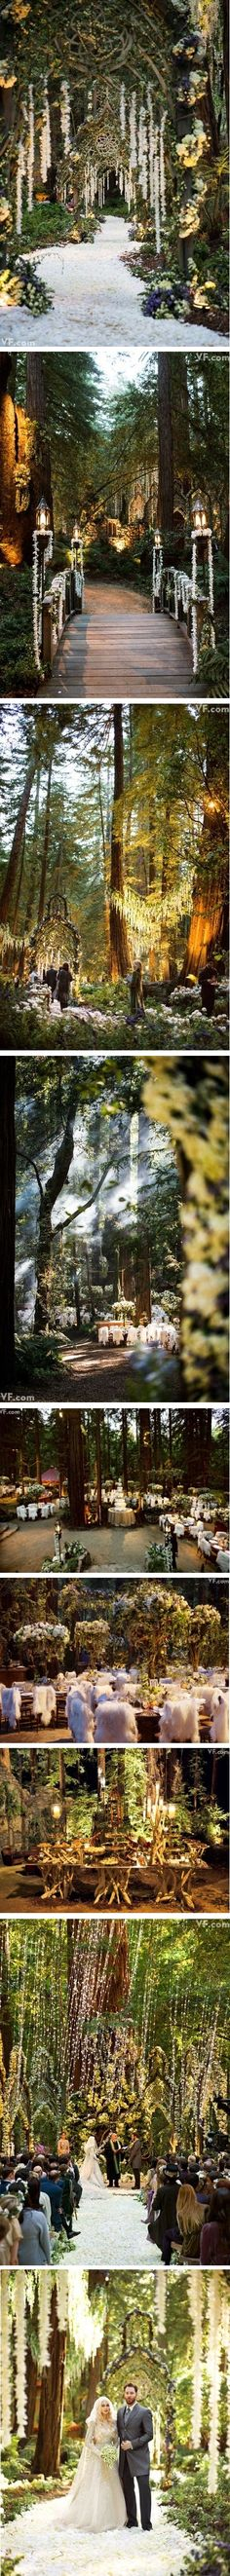 elvish wedding from heaven. Damn good things to look at. I am just shocked there are people who can afford to have weddings like this. I really wish I could do something like this! Wedding Goals, Wedding Themes, Wedding Planning, Dream Wedding, Wedding Decorations, Cop Wedding, Wedding Swing, Wedding Fur, Crazy Wedding